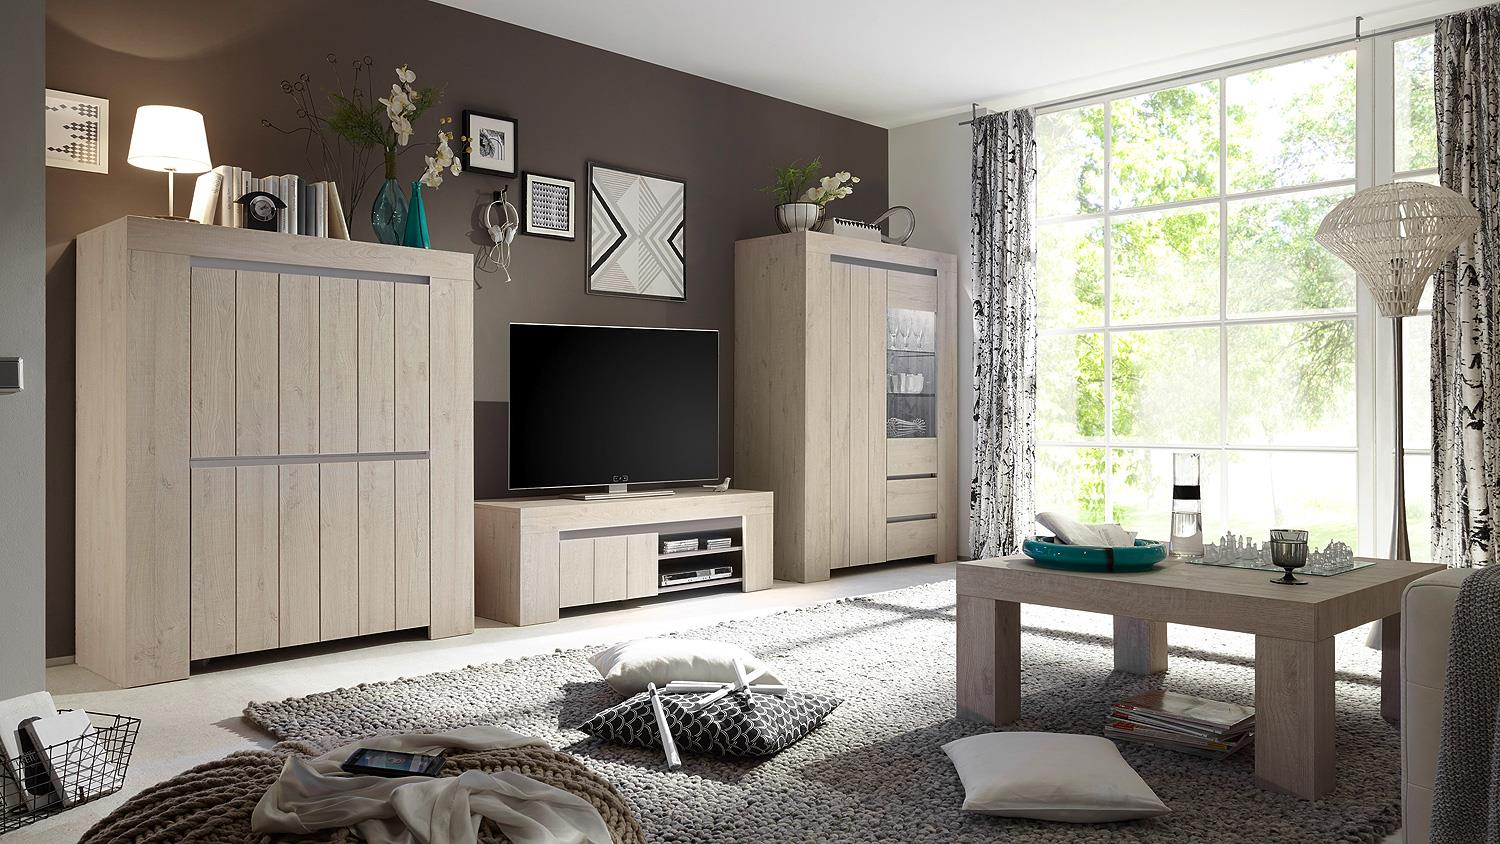 tv board palmira lowboard unterschrank eiche hell und beige matt 140. Black Bedroom Furniture Sets. Home Design Ideas